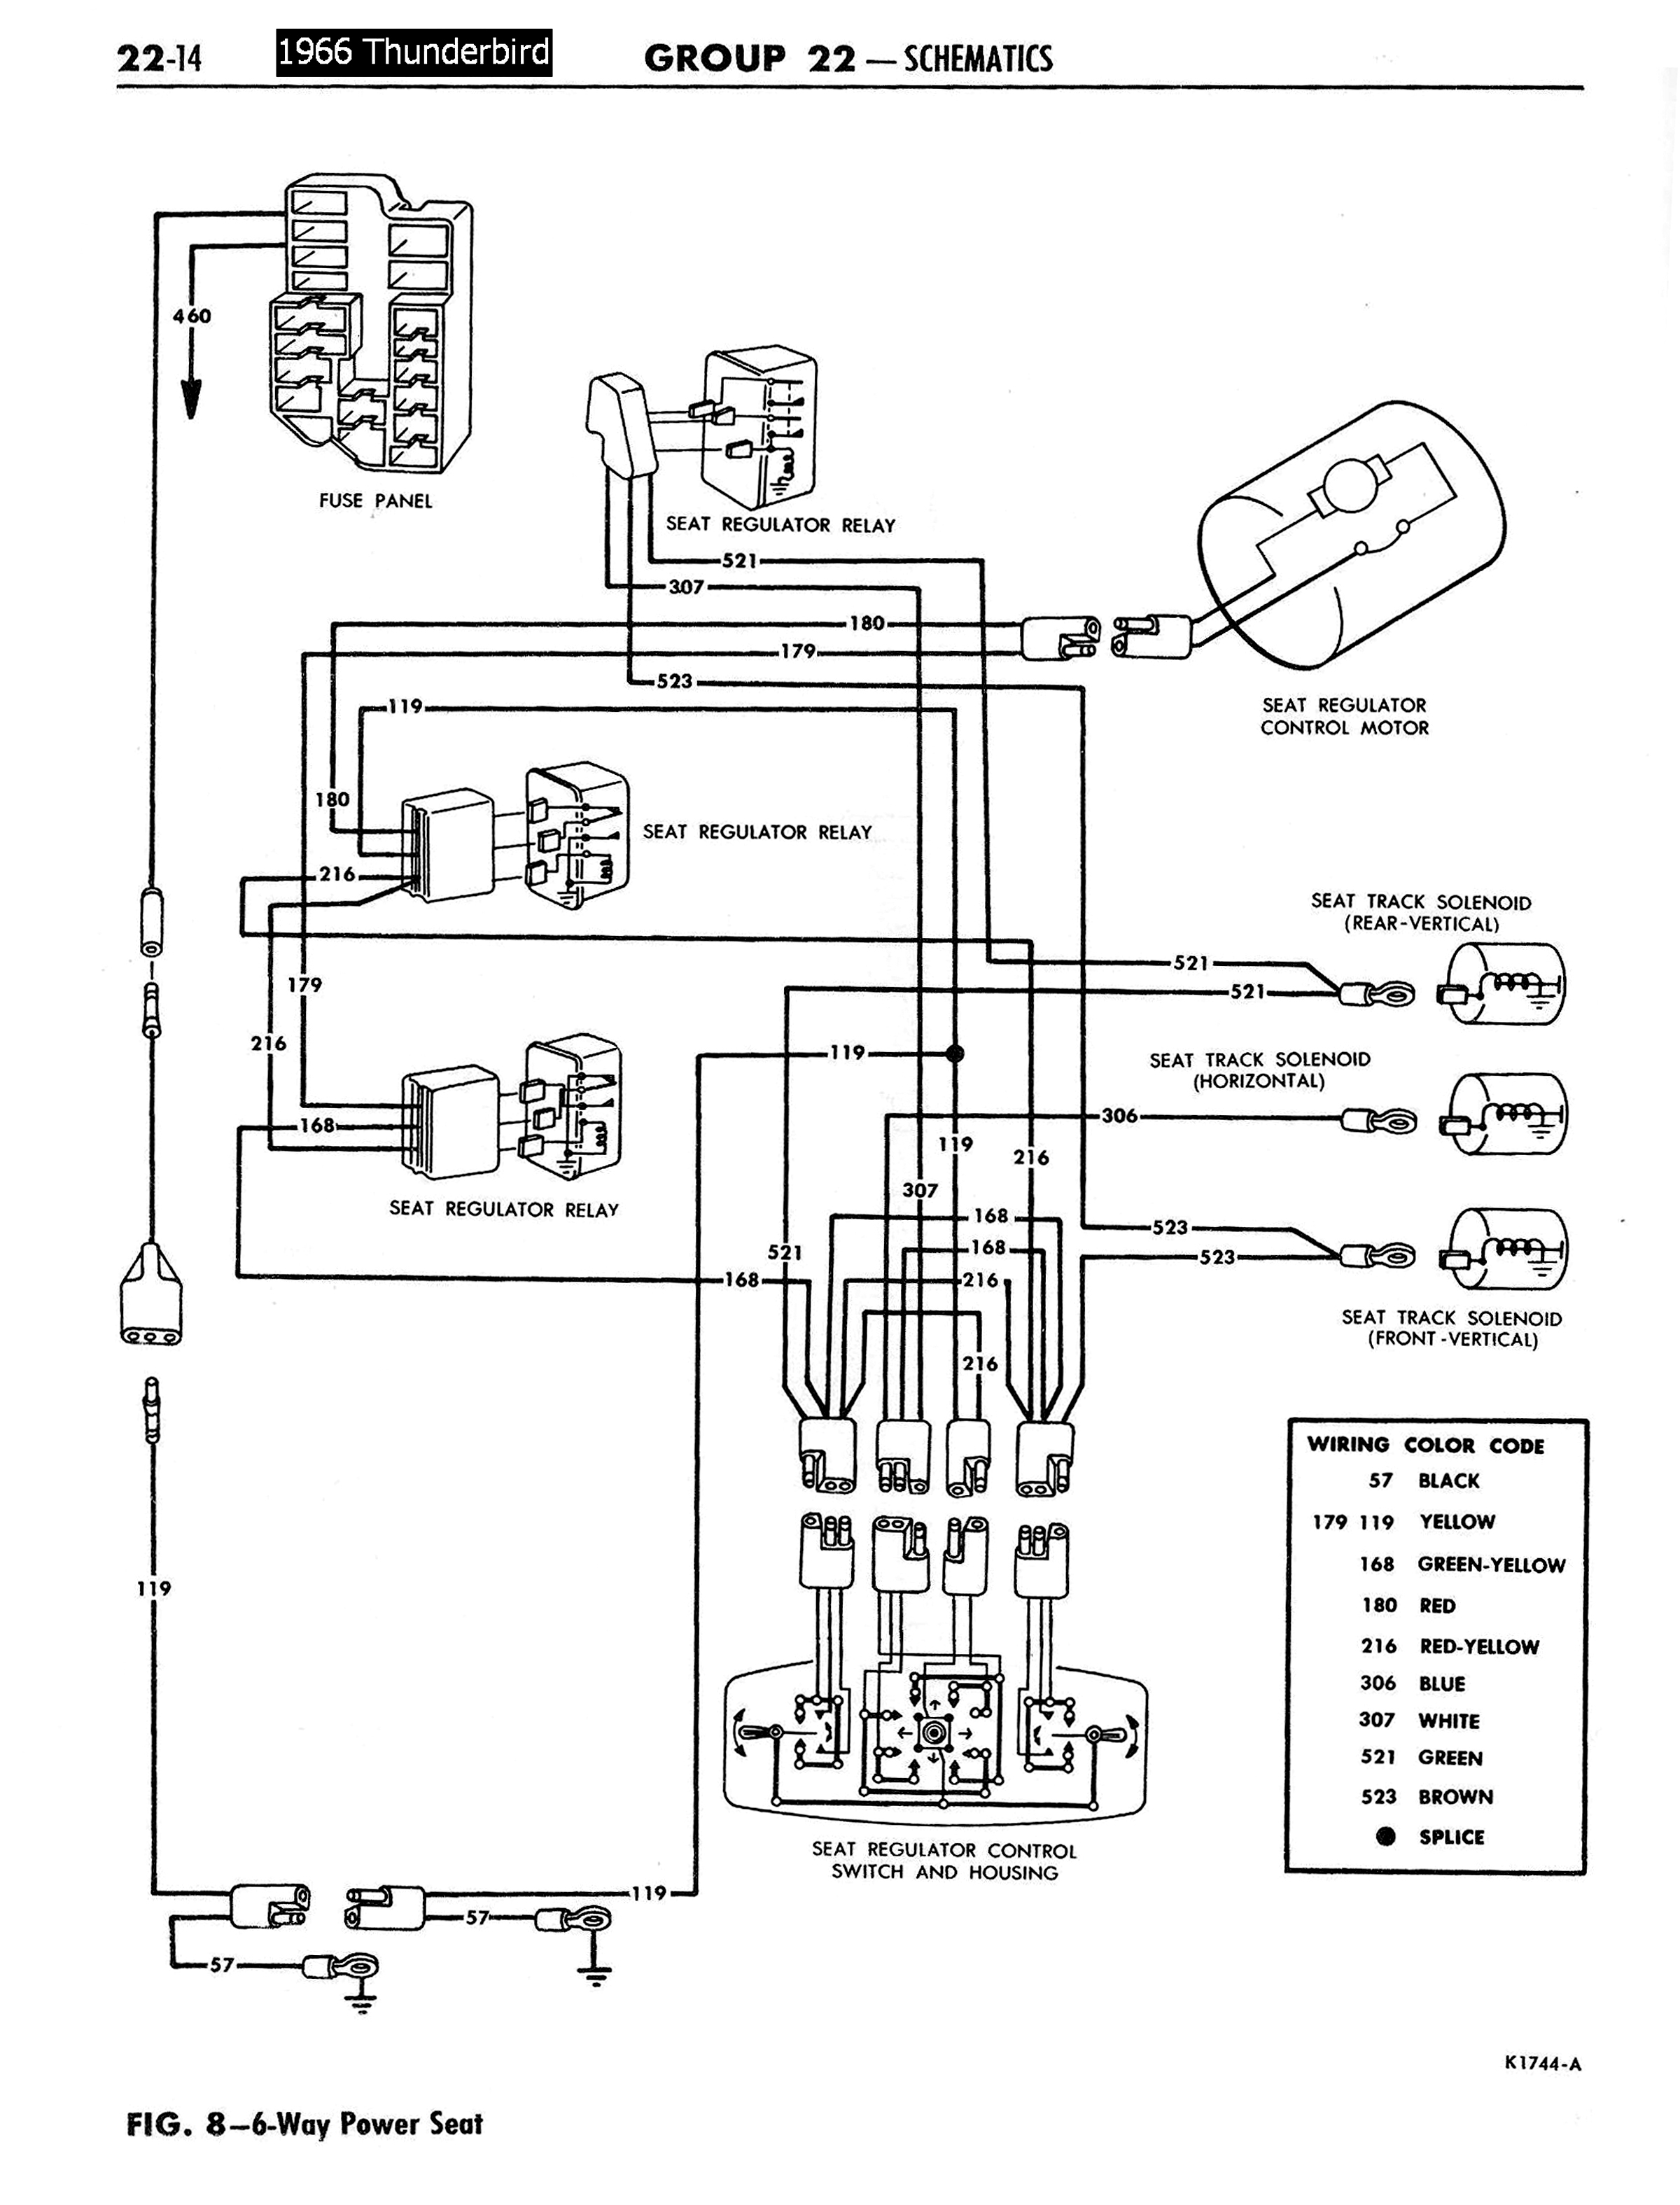 power at light wiring diagram 1997 buick lesabre 1958 68 ford electrical schematics